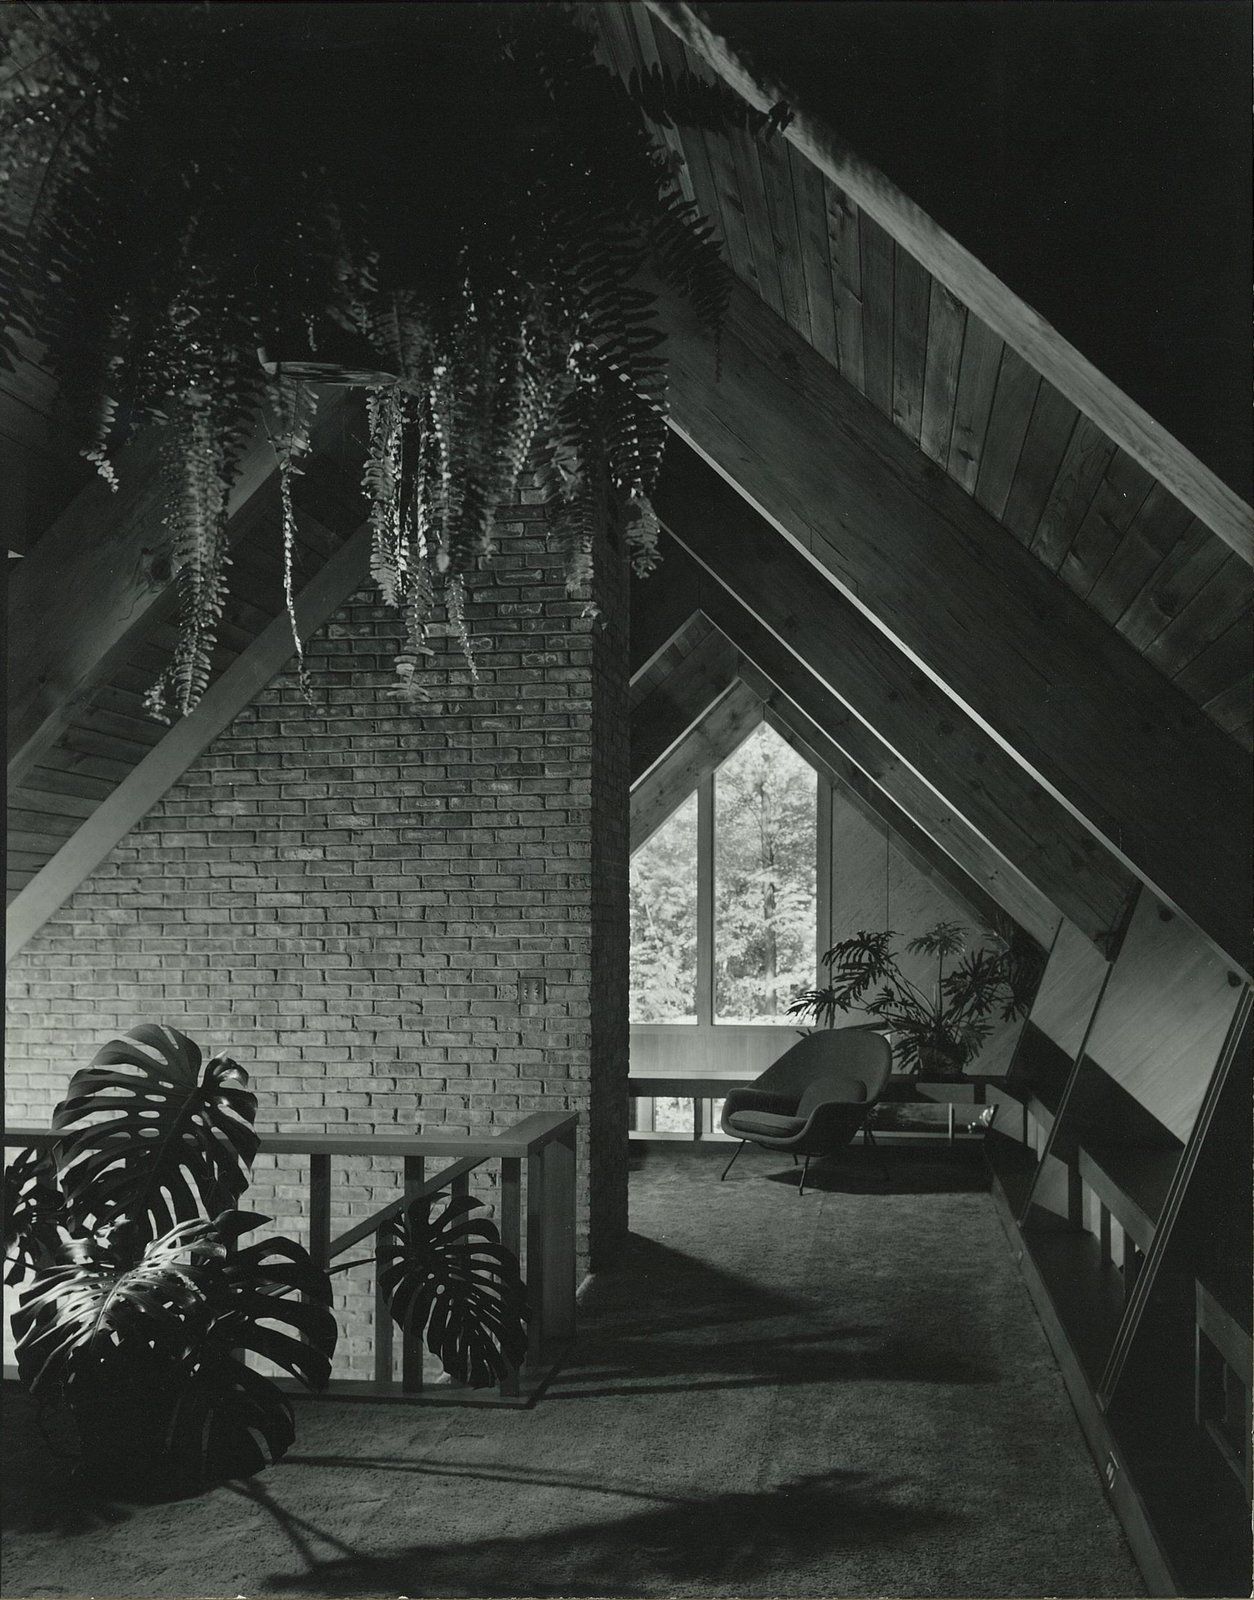 Photo 6 of 6 in The Josephine Ashmun Residence